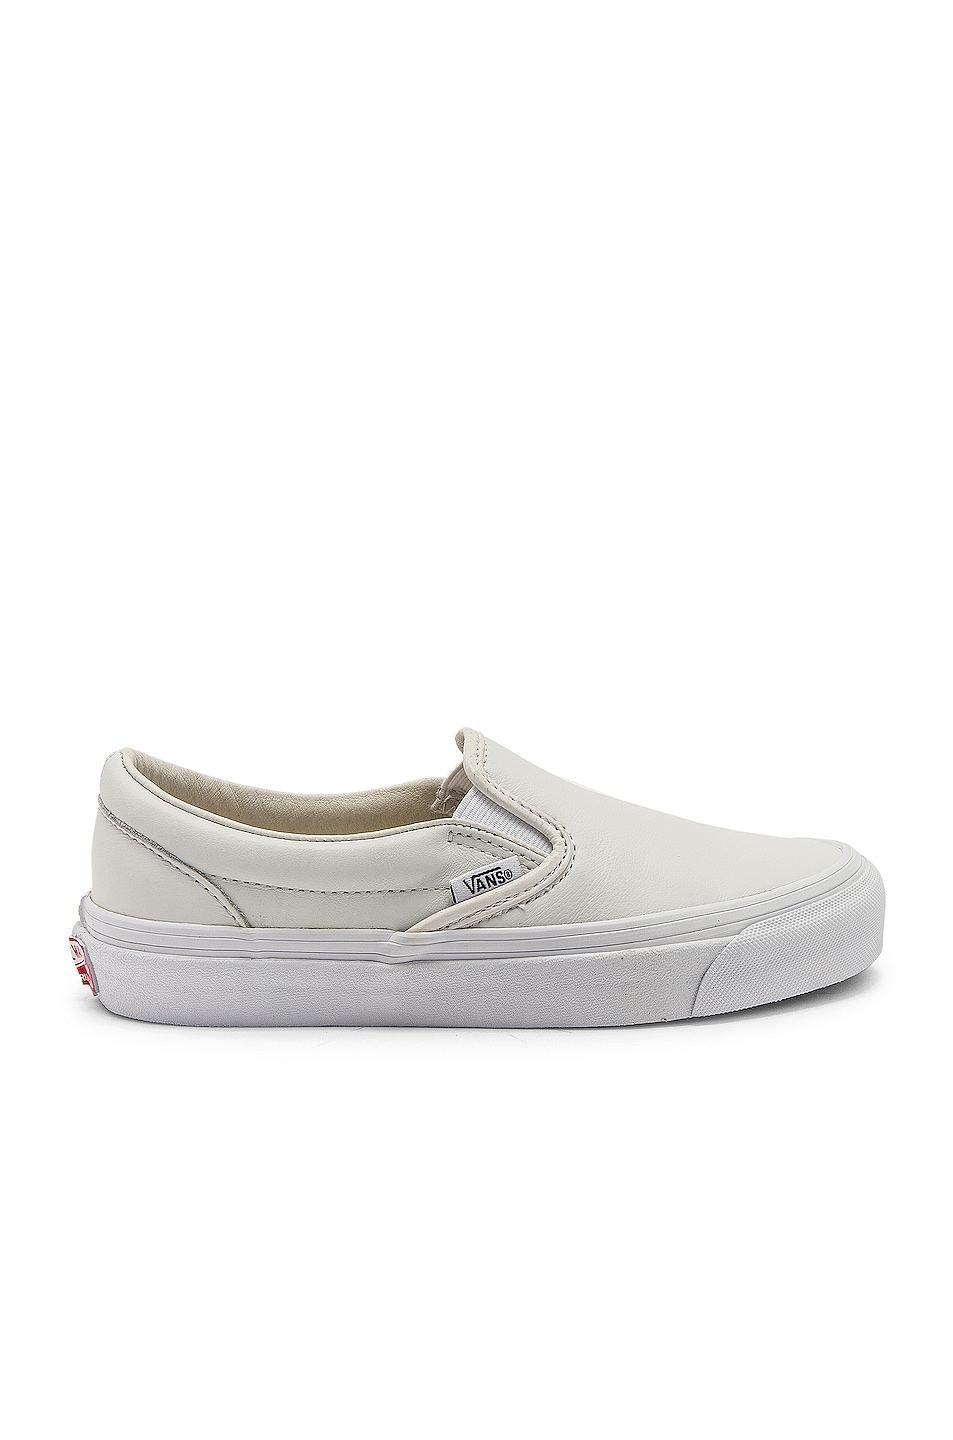 Image 1 of Vans Vault OG Classic Slip-On LX in White